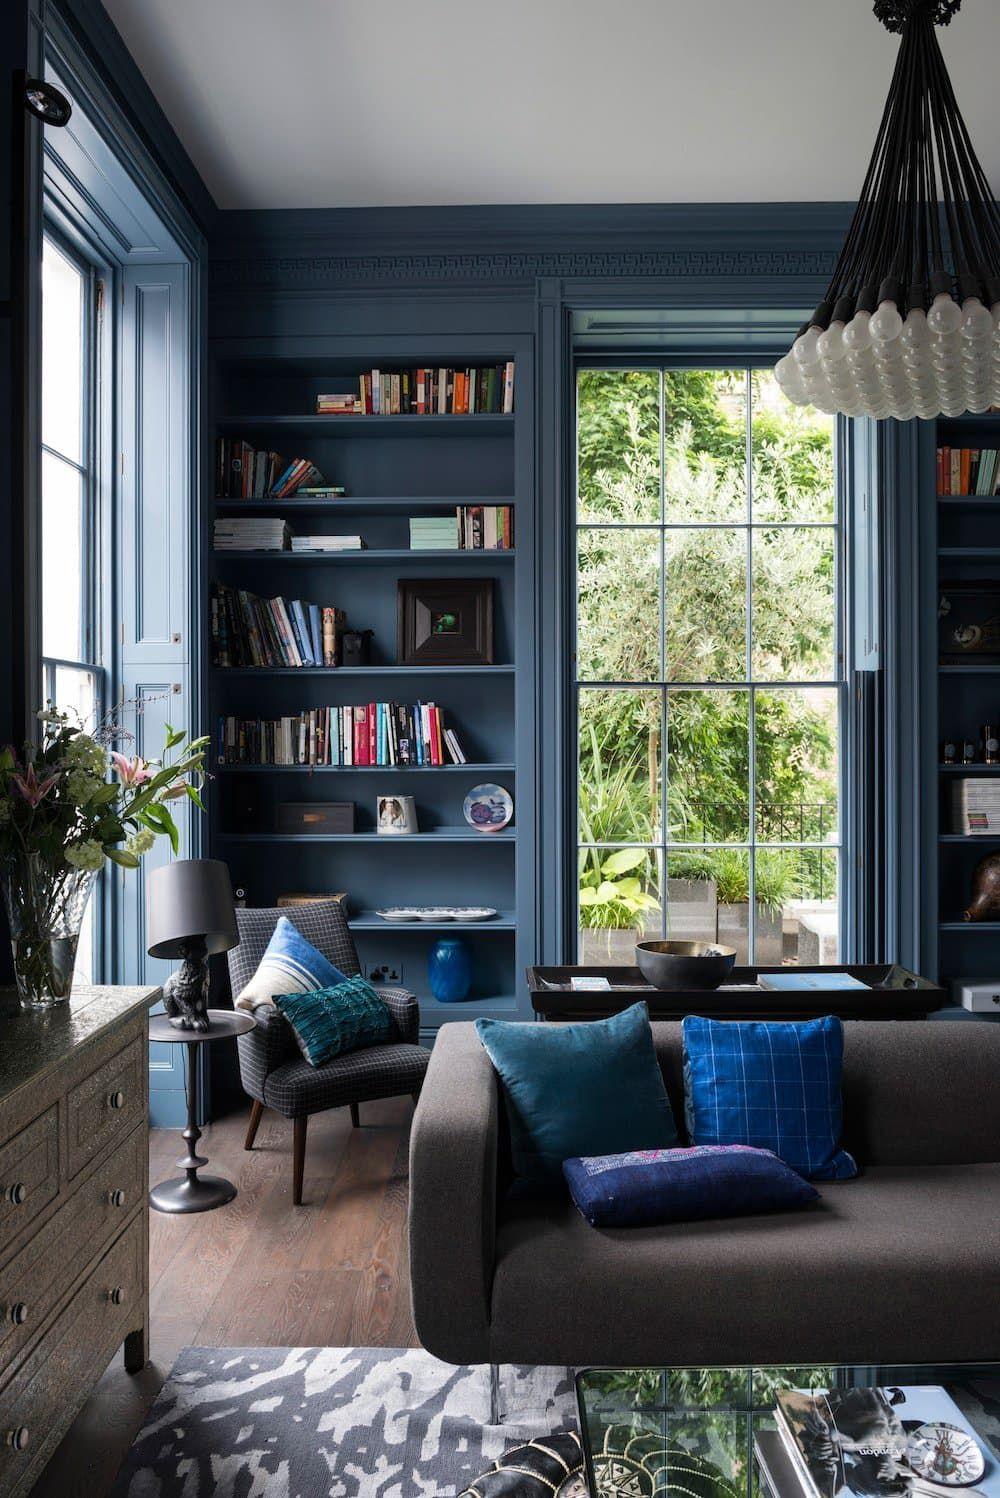 Meuble Bibliothèque Algerie 9 Dark Rich Vibrant Rooms That Will Make You Rethink Everything